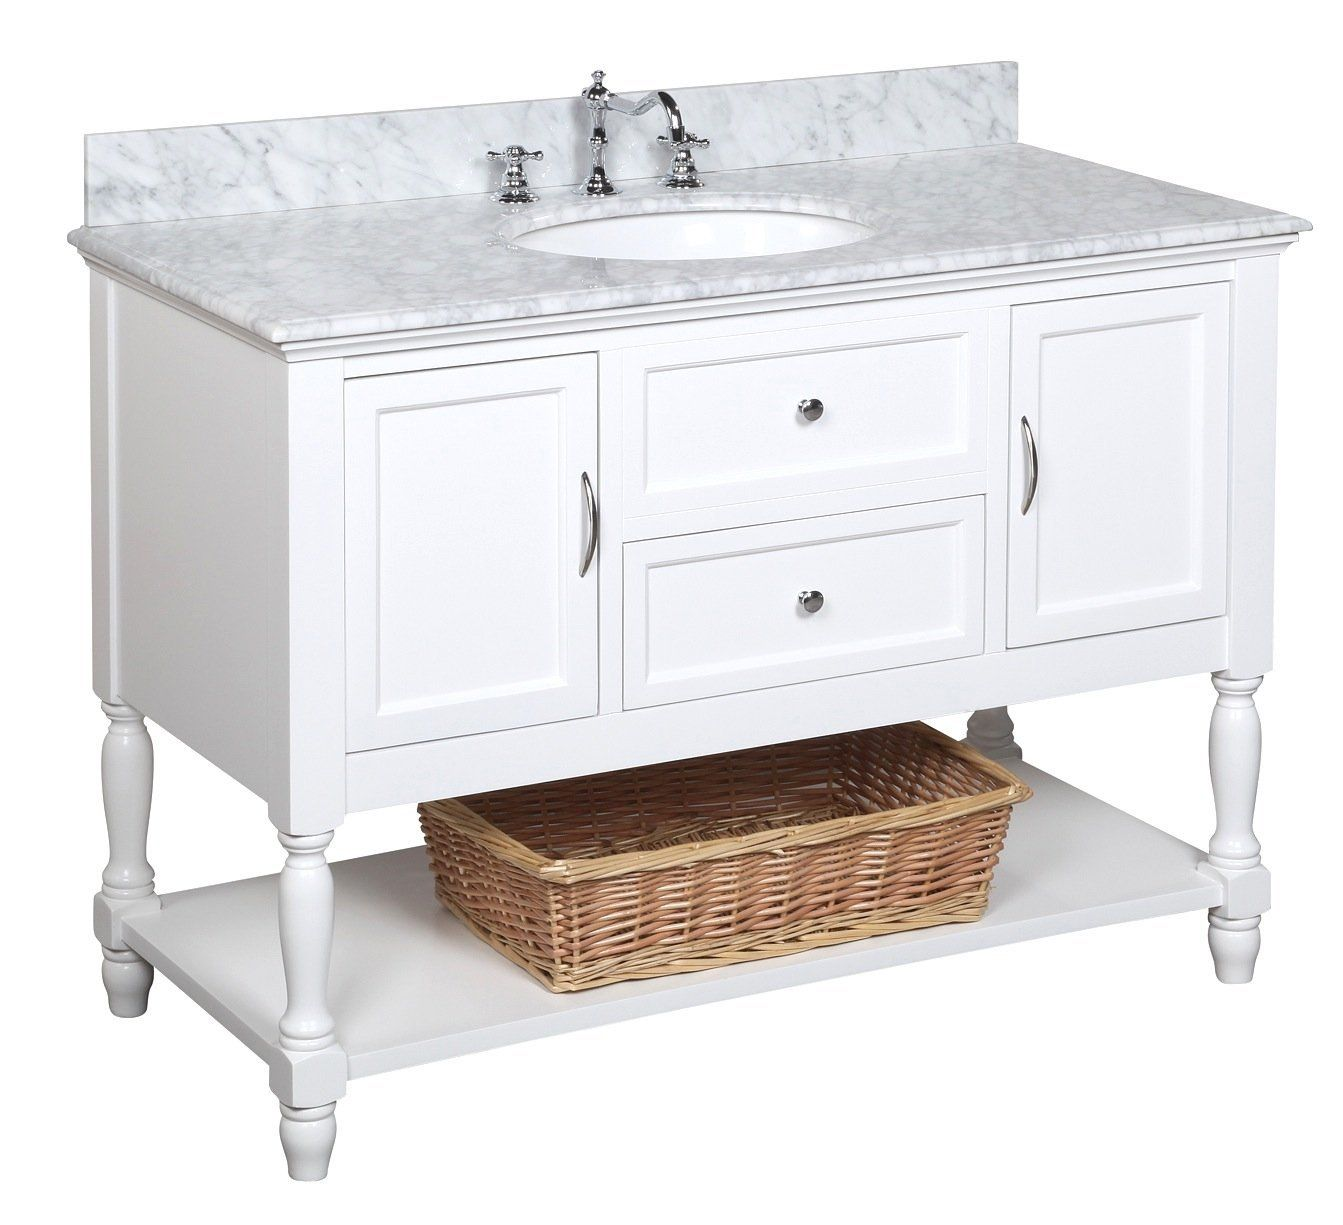 Kitchen Bath Collection Kbc17wtcarr Beverly Bathroom Vanity With Marble Countertop Traditional Bathroom Vanity 48 Inch Bathroom Vanity Single Bathroom Vanity